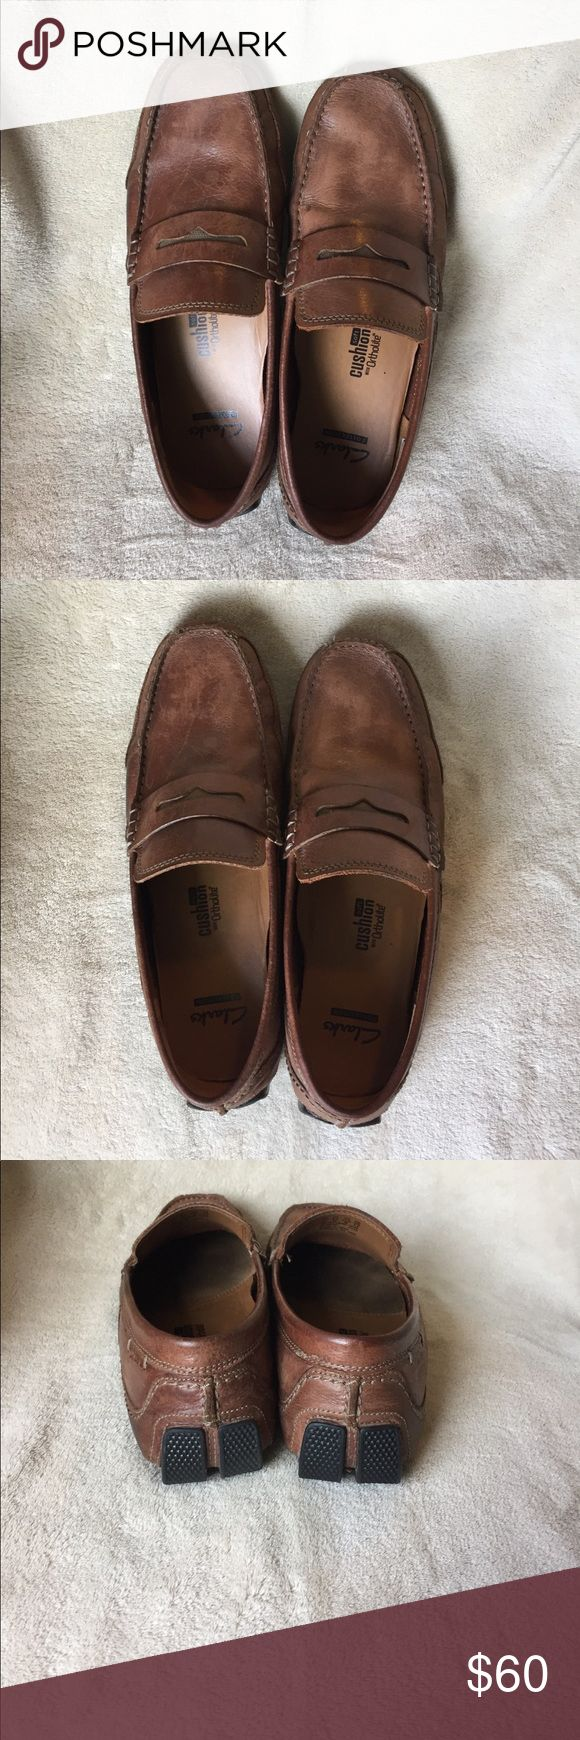 Clarks Mens Loafers Men's Clarks loafers with ortholite soft cushion inside.  Gently worn as shown in pictures on the leather.  Great shoe in good condition.  Worn mainly to church.  Son just out grew them. Clarks Shoes Loafers & Slip-Ons